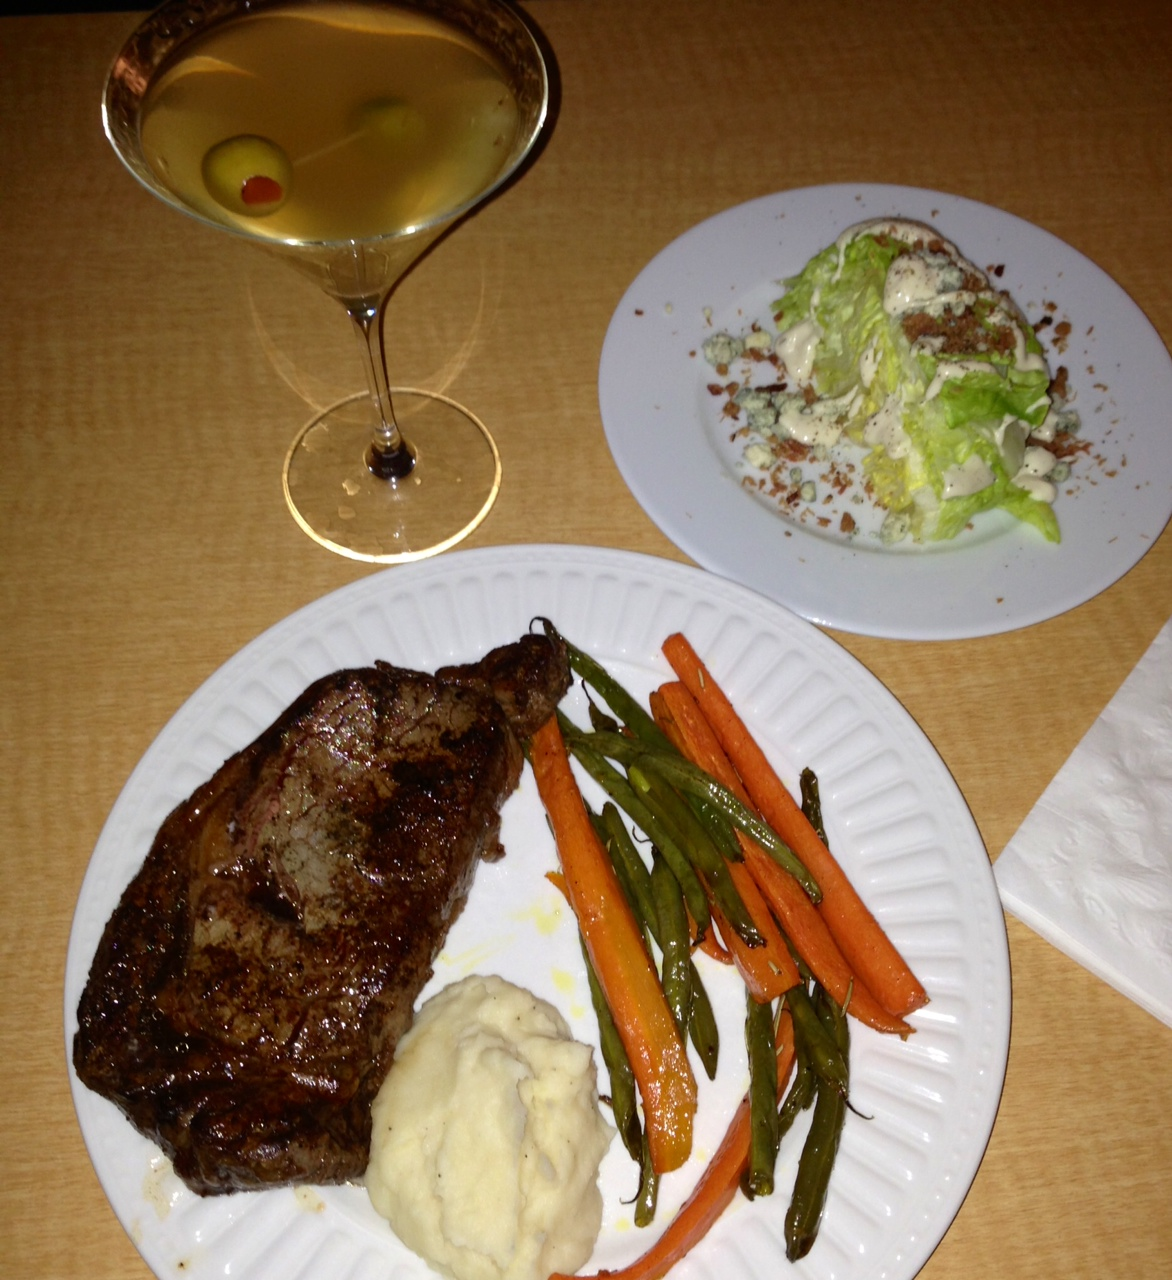 Photo: Home-cooked ribeye with roasted carrots & green beans, mashed potatoes, mini wedge salad. And a dirty martini, of course. Who needs to go out to a steakhouse?? ;)